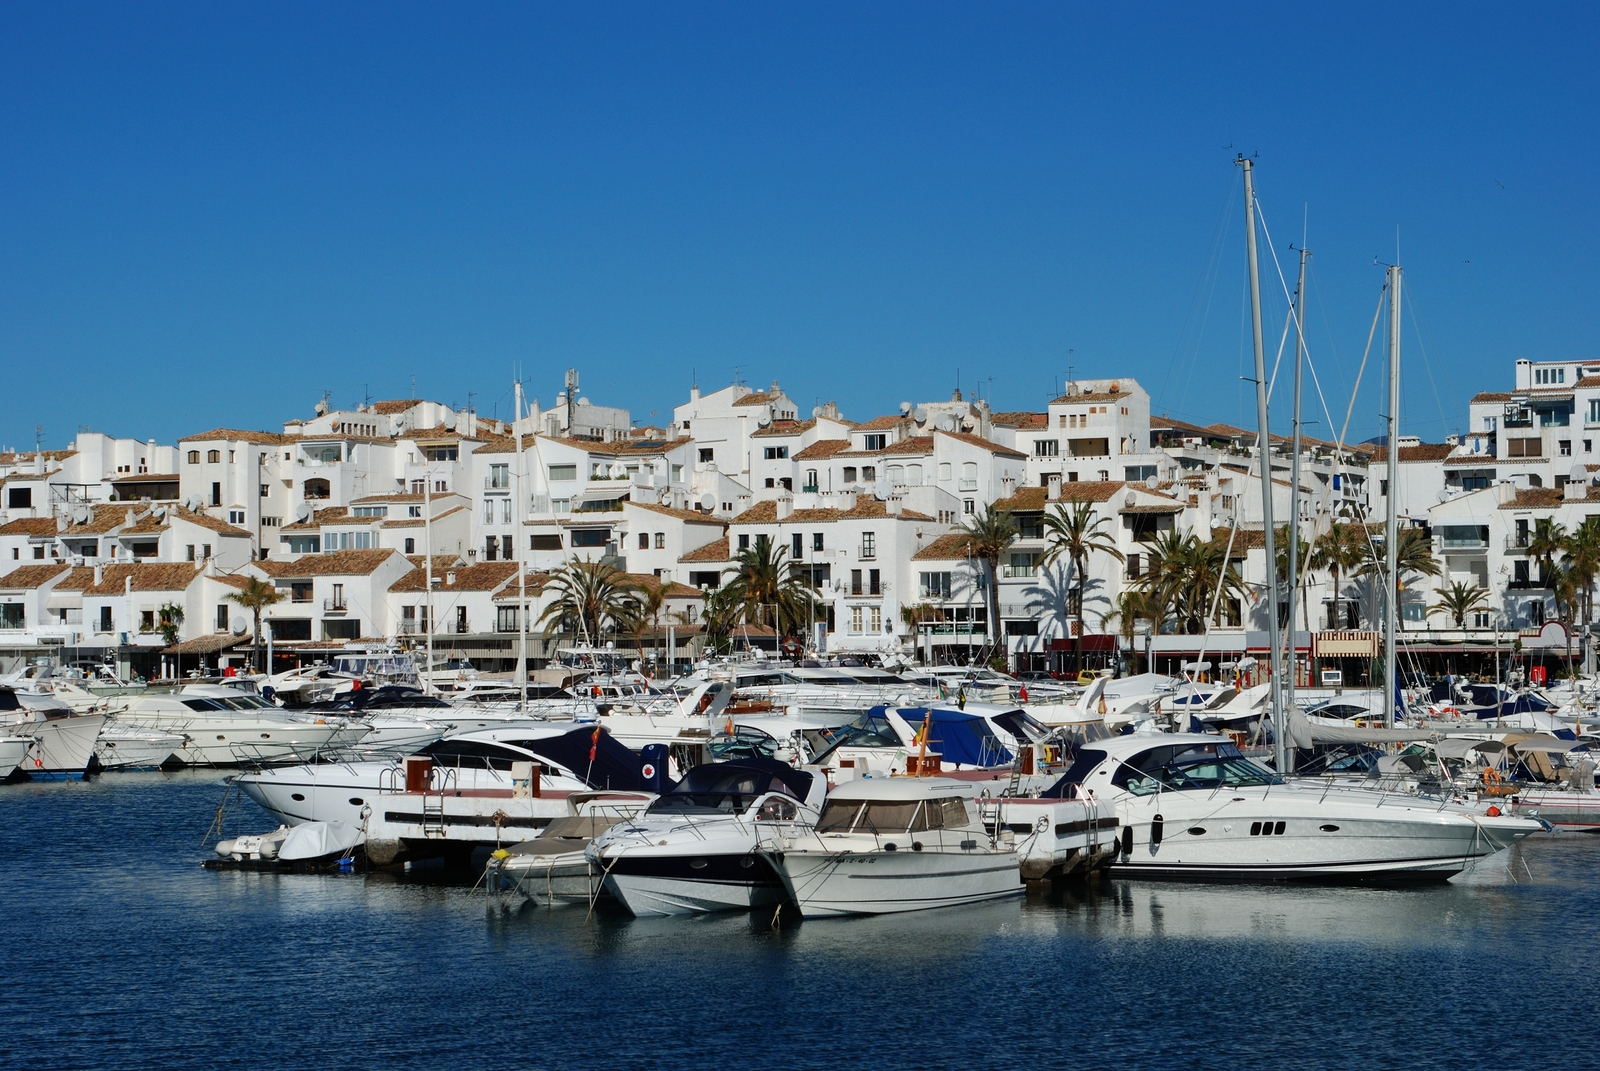 Marbella property and living Boats in marina, Puerto Banus, Spain.